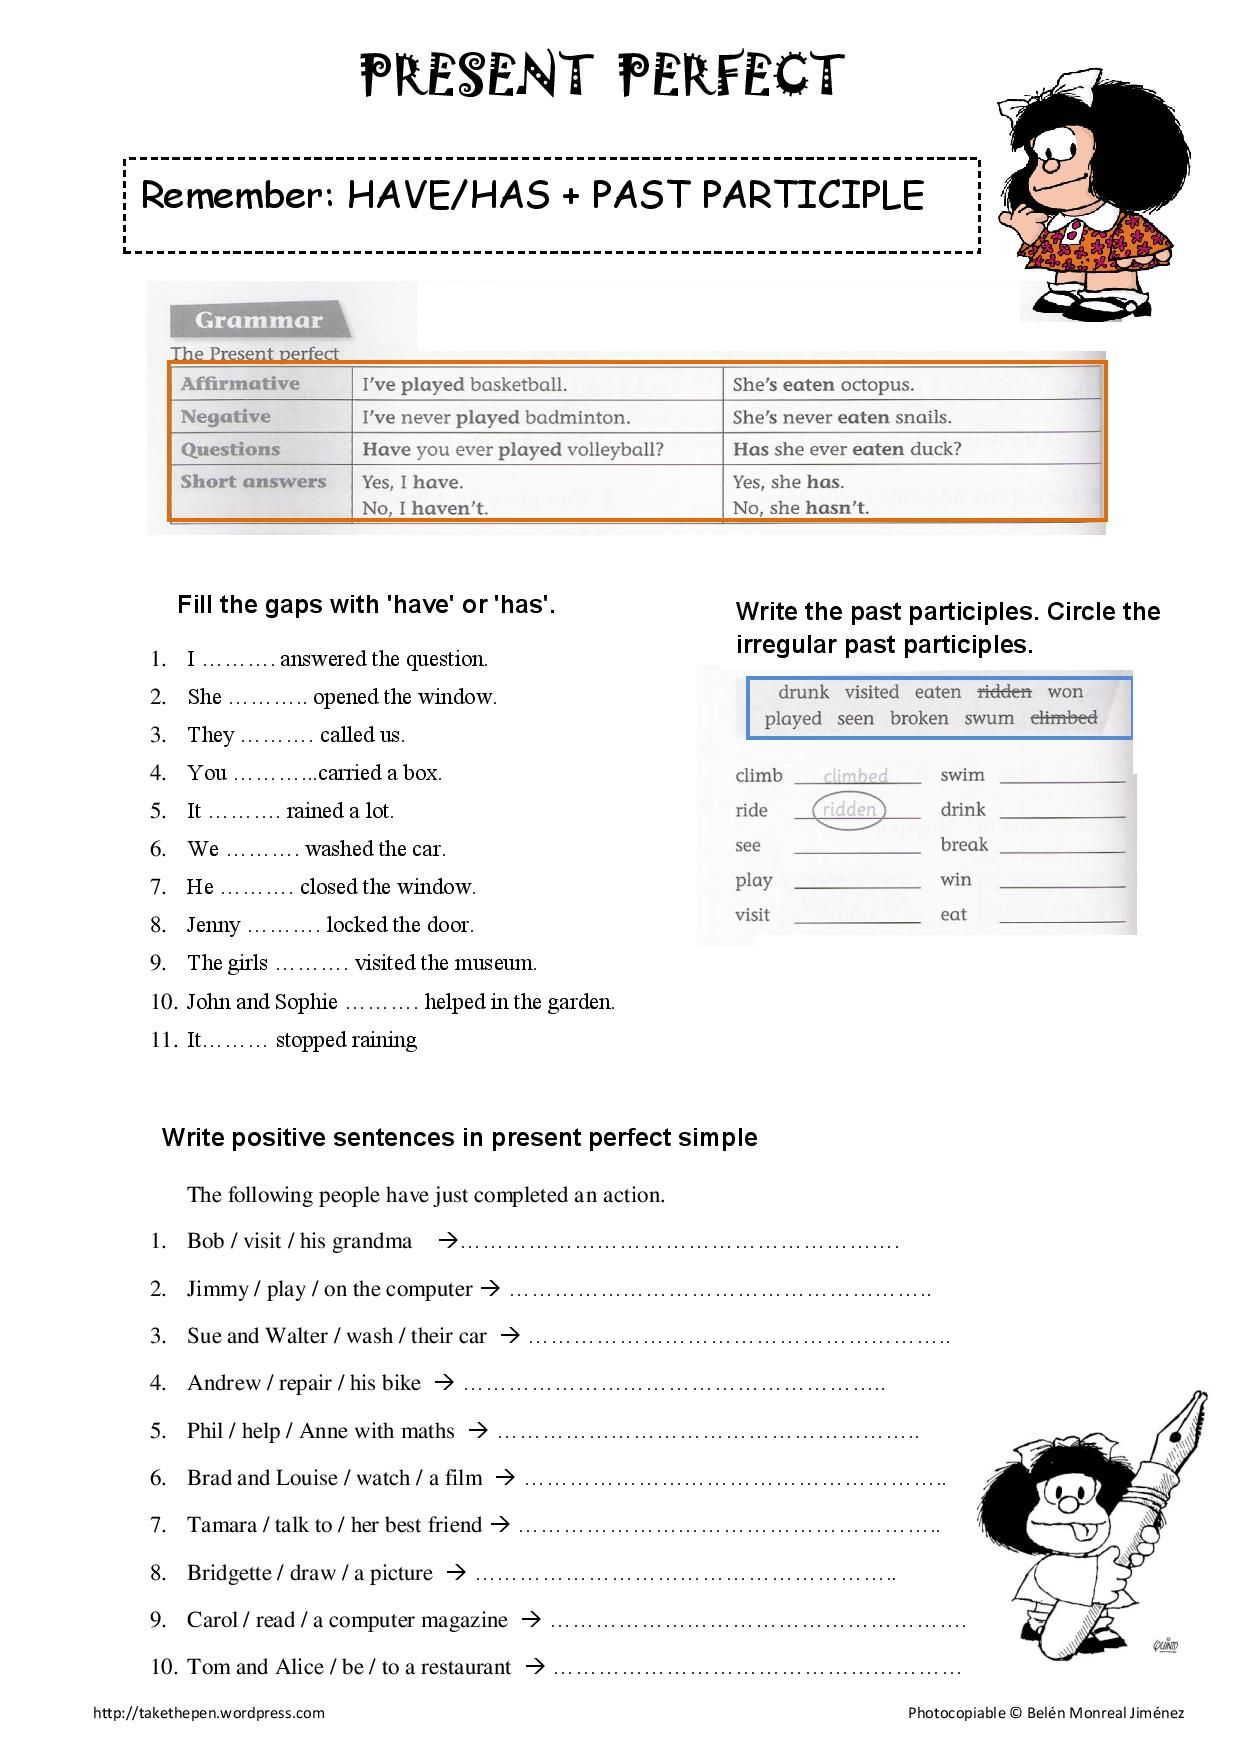 Present Perfect Tense Printable Worksheet Google Search English